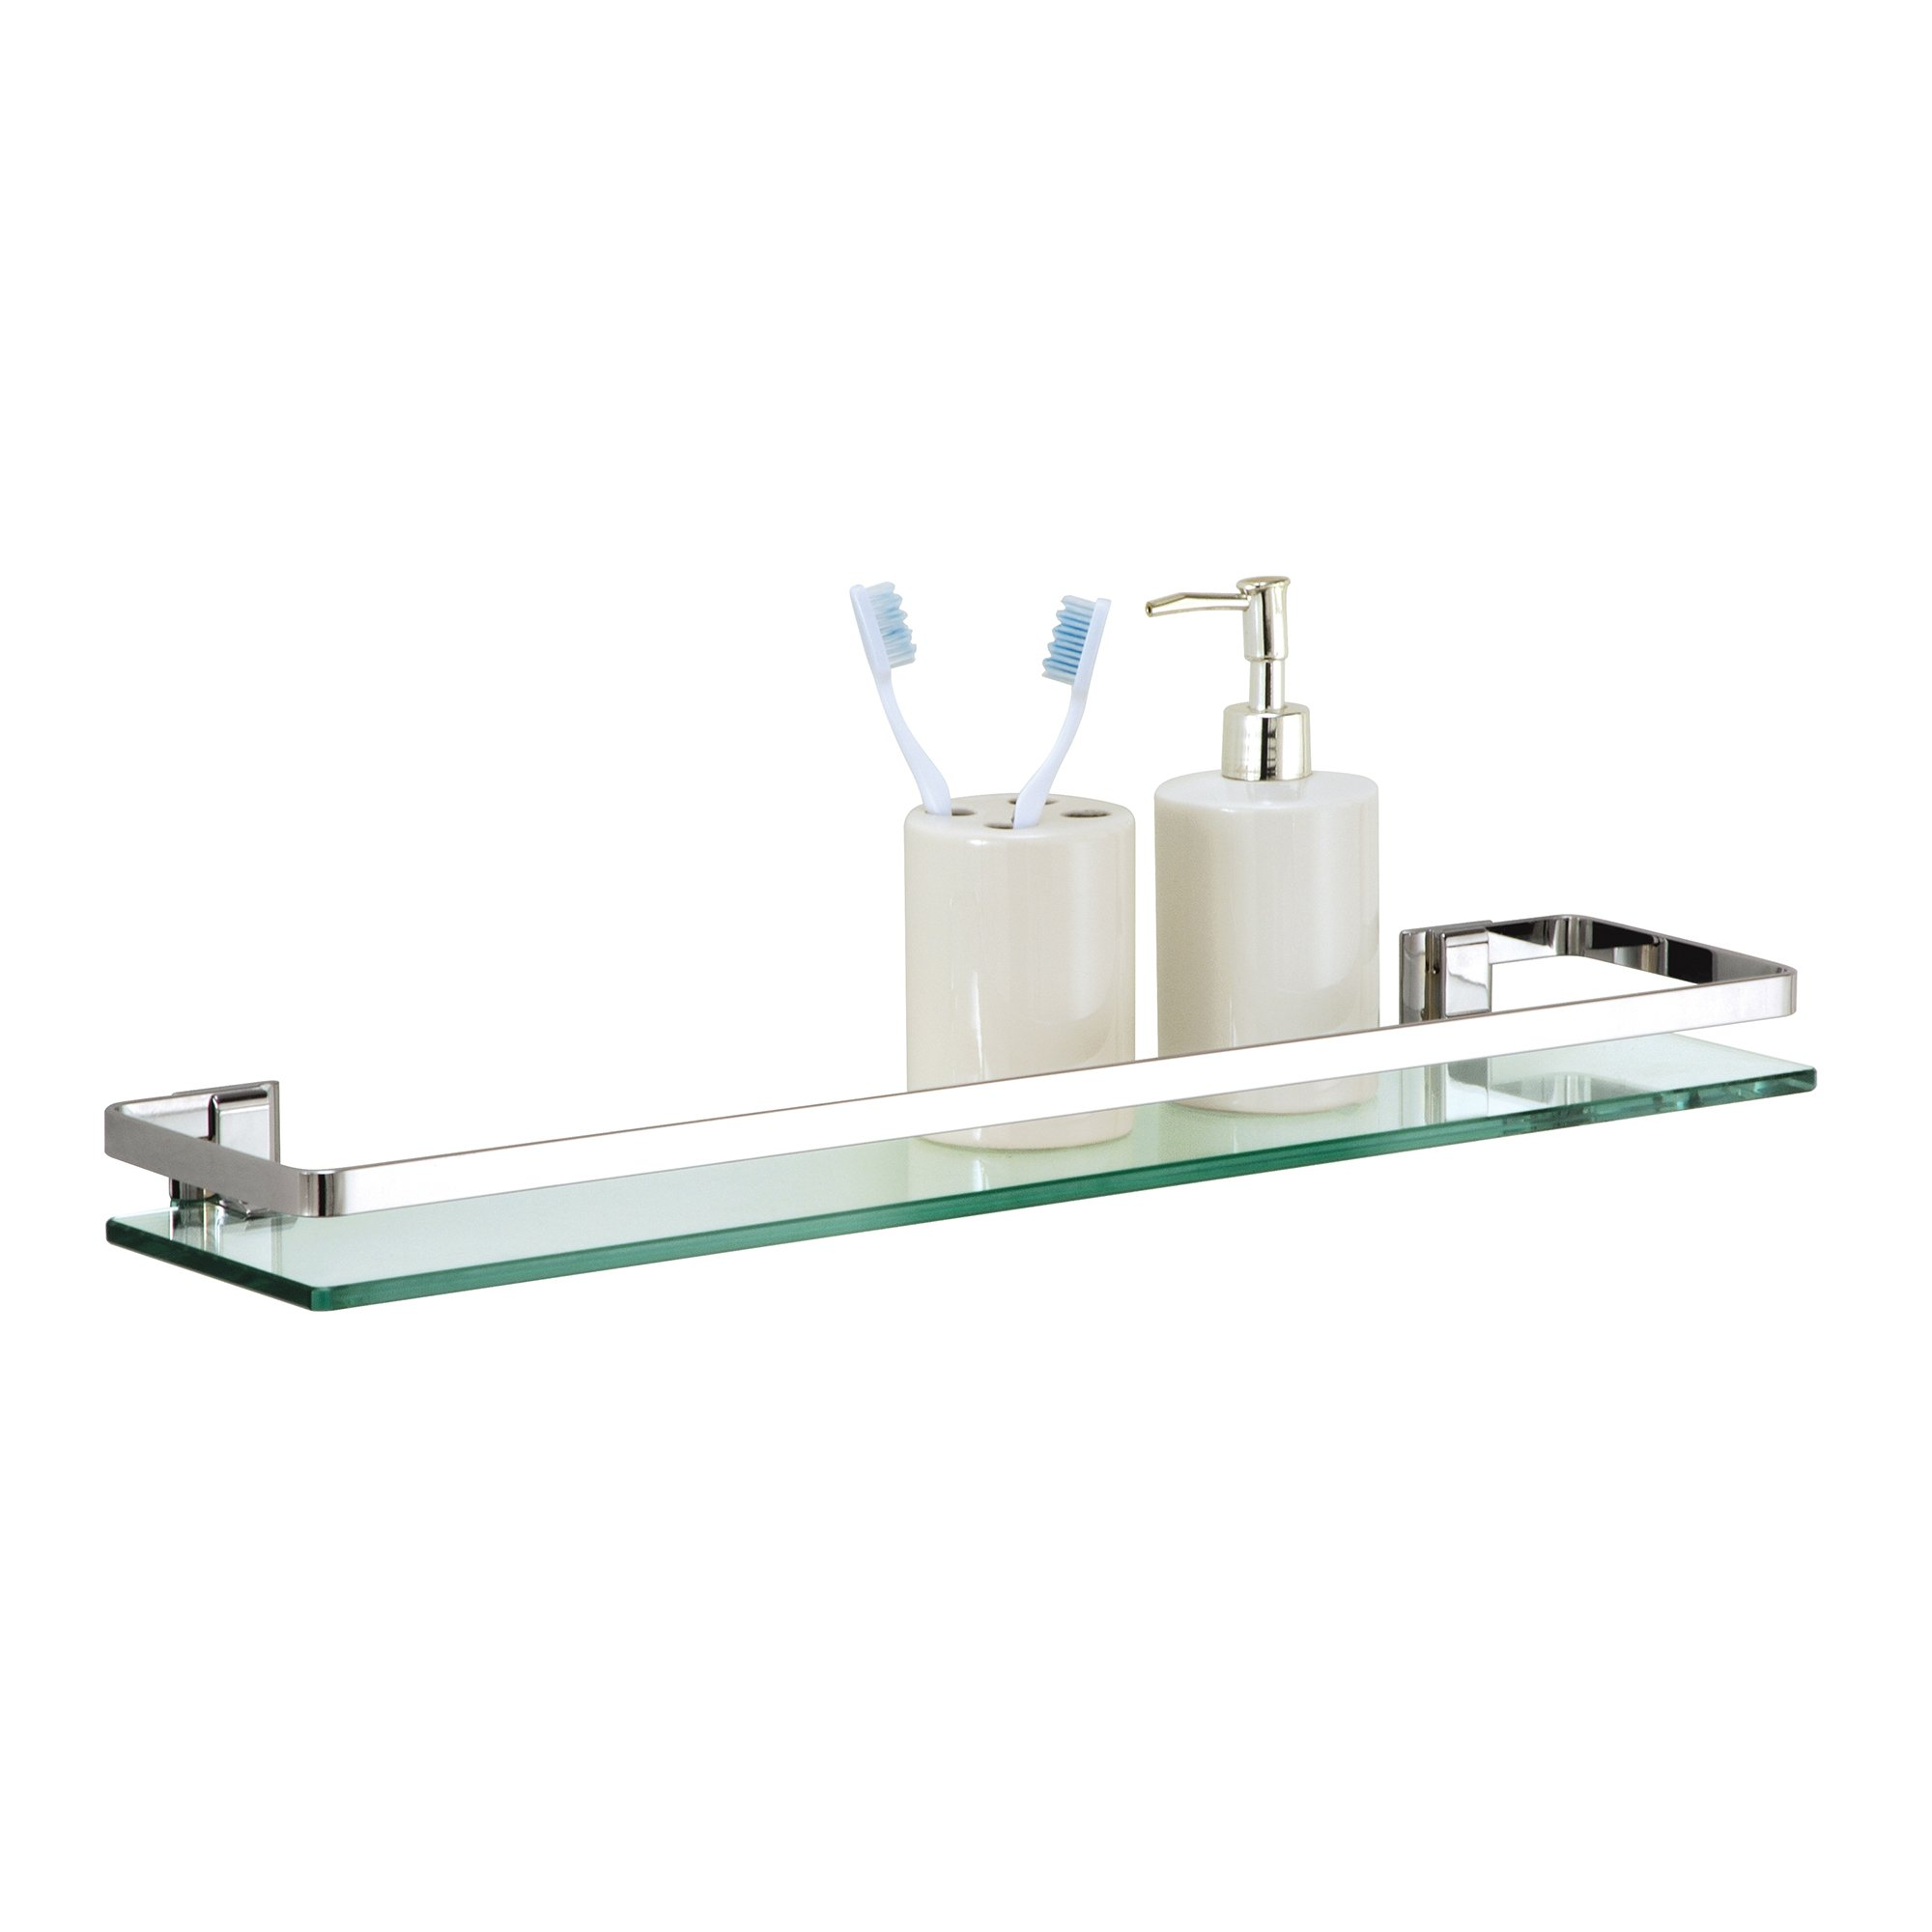 Organize It All Wall Mounting Bathroom Glass Shelf with Chrome Finish and Rail